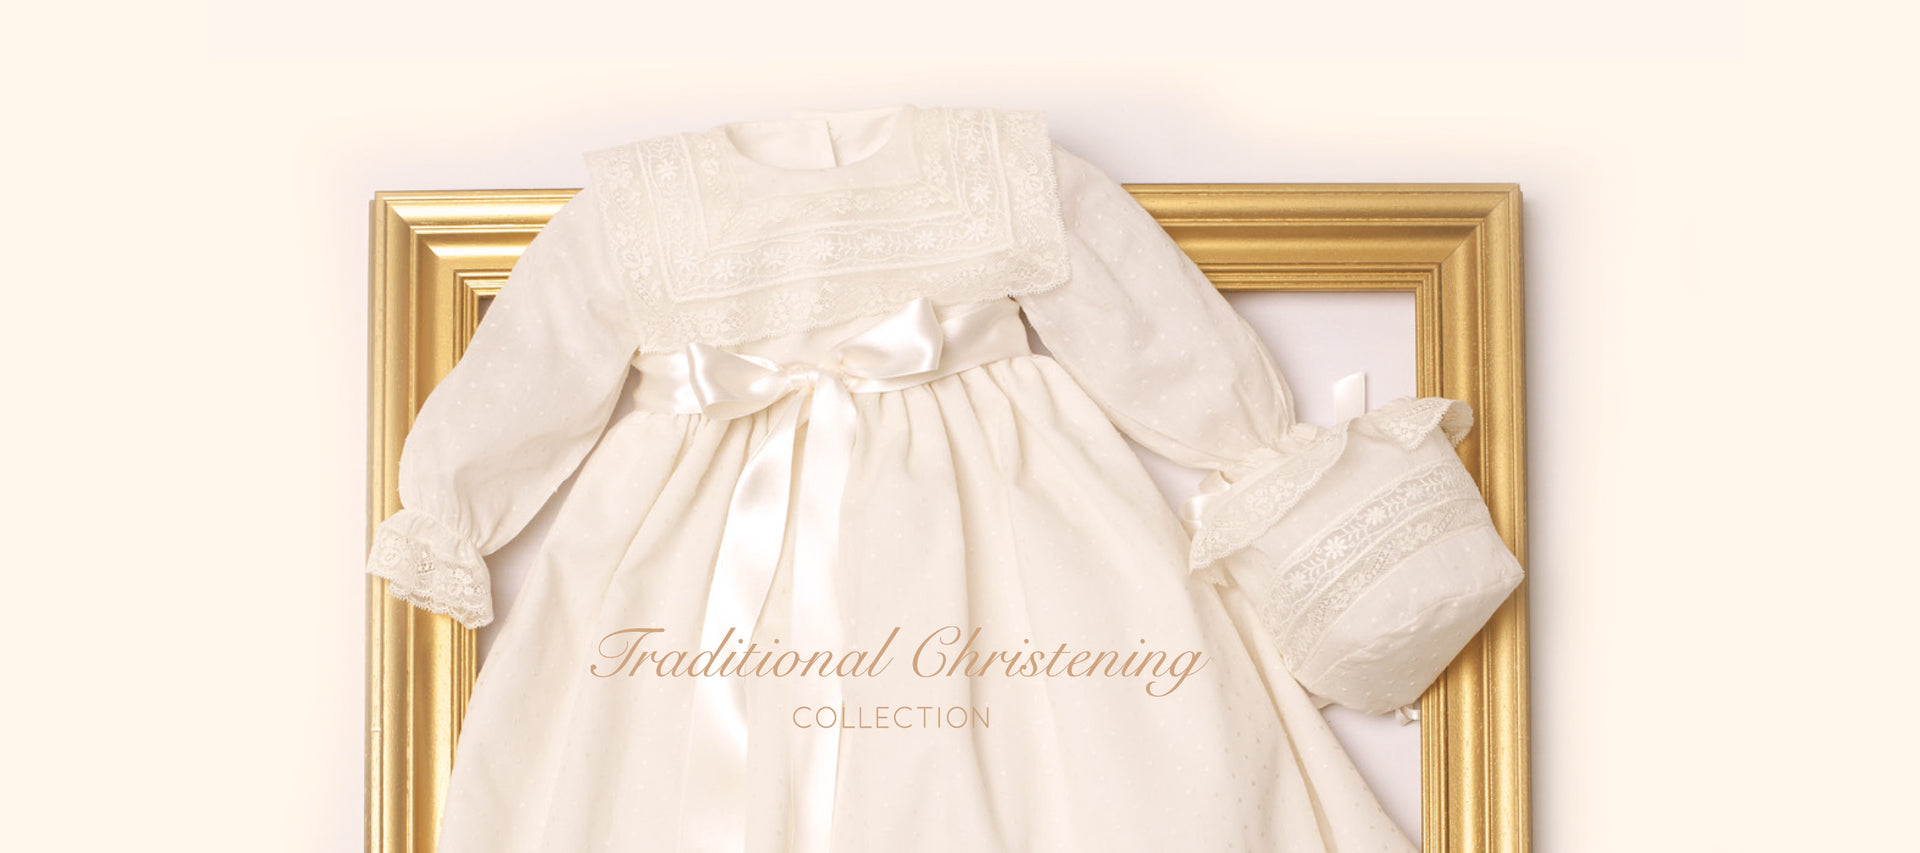 246c5cdd4 Traditional Children s Clothing